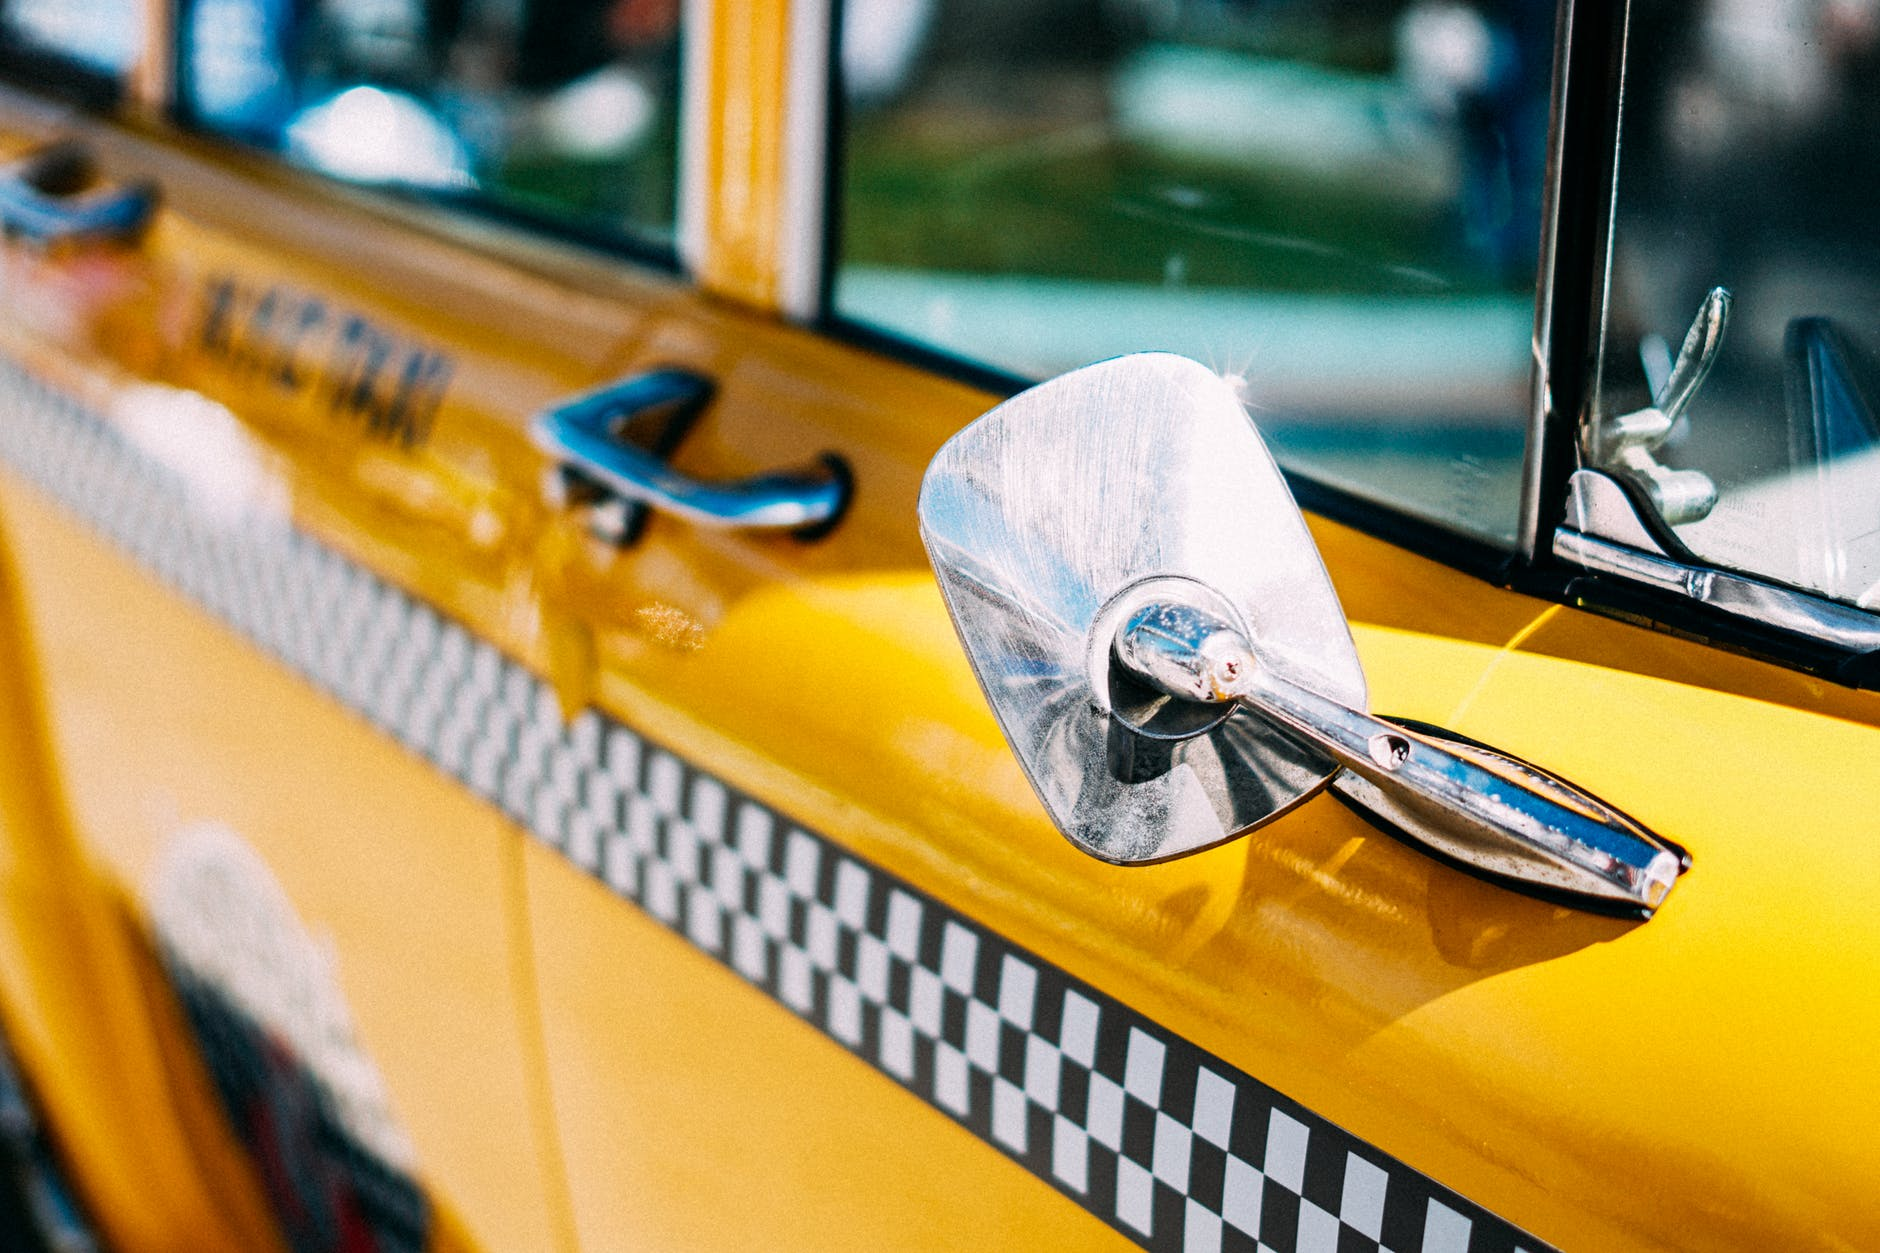 closeup photo of yellow taxi